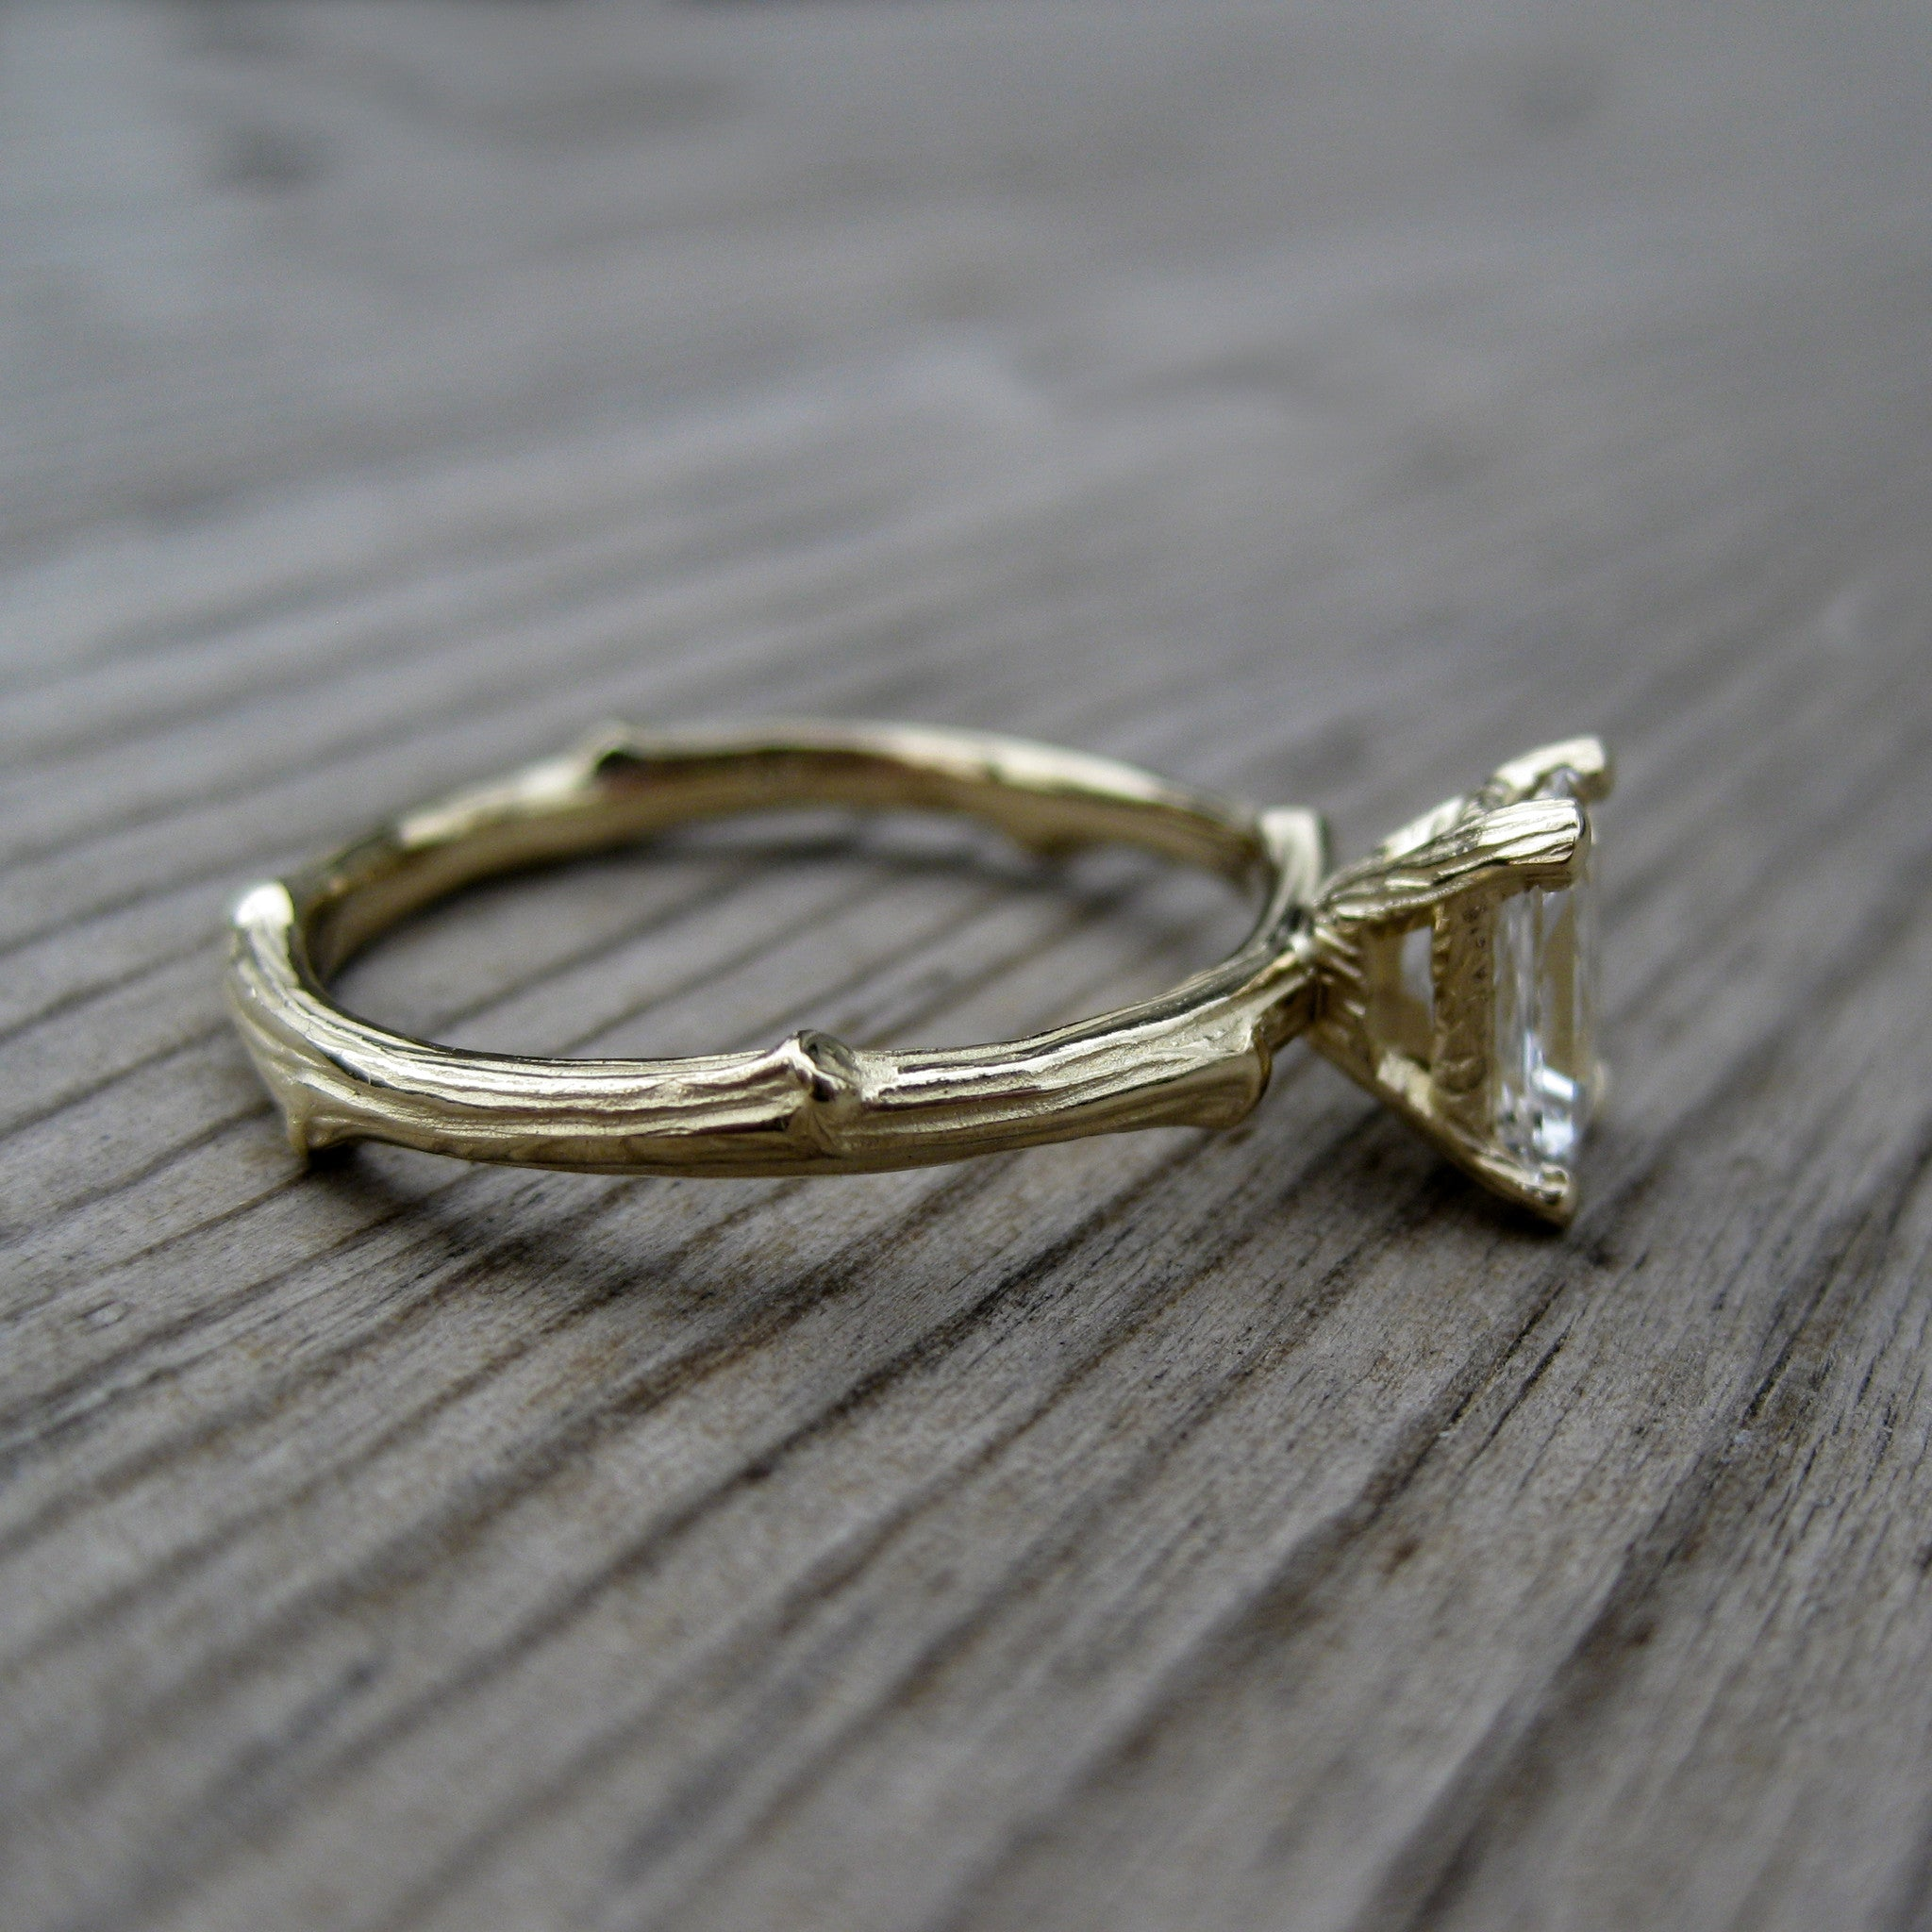 ring gold products rings wedding or engagement narrow twig pine branch yellow rose